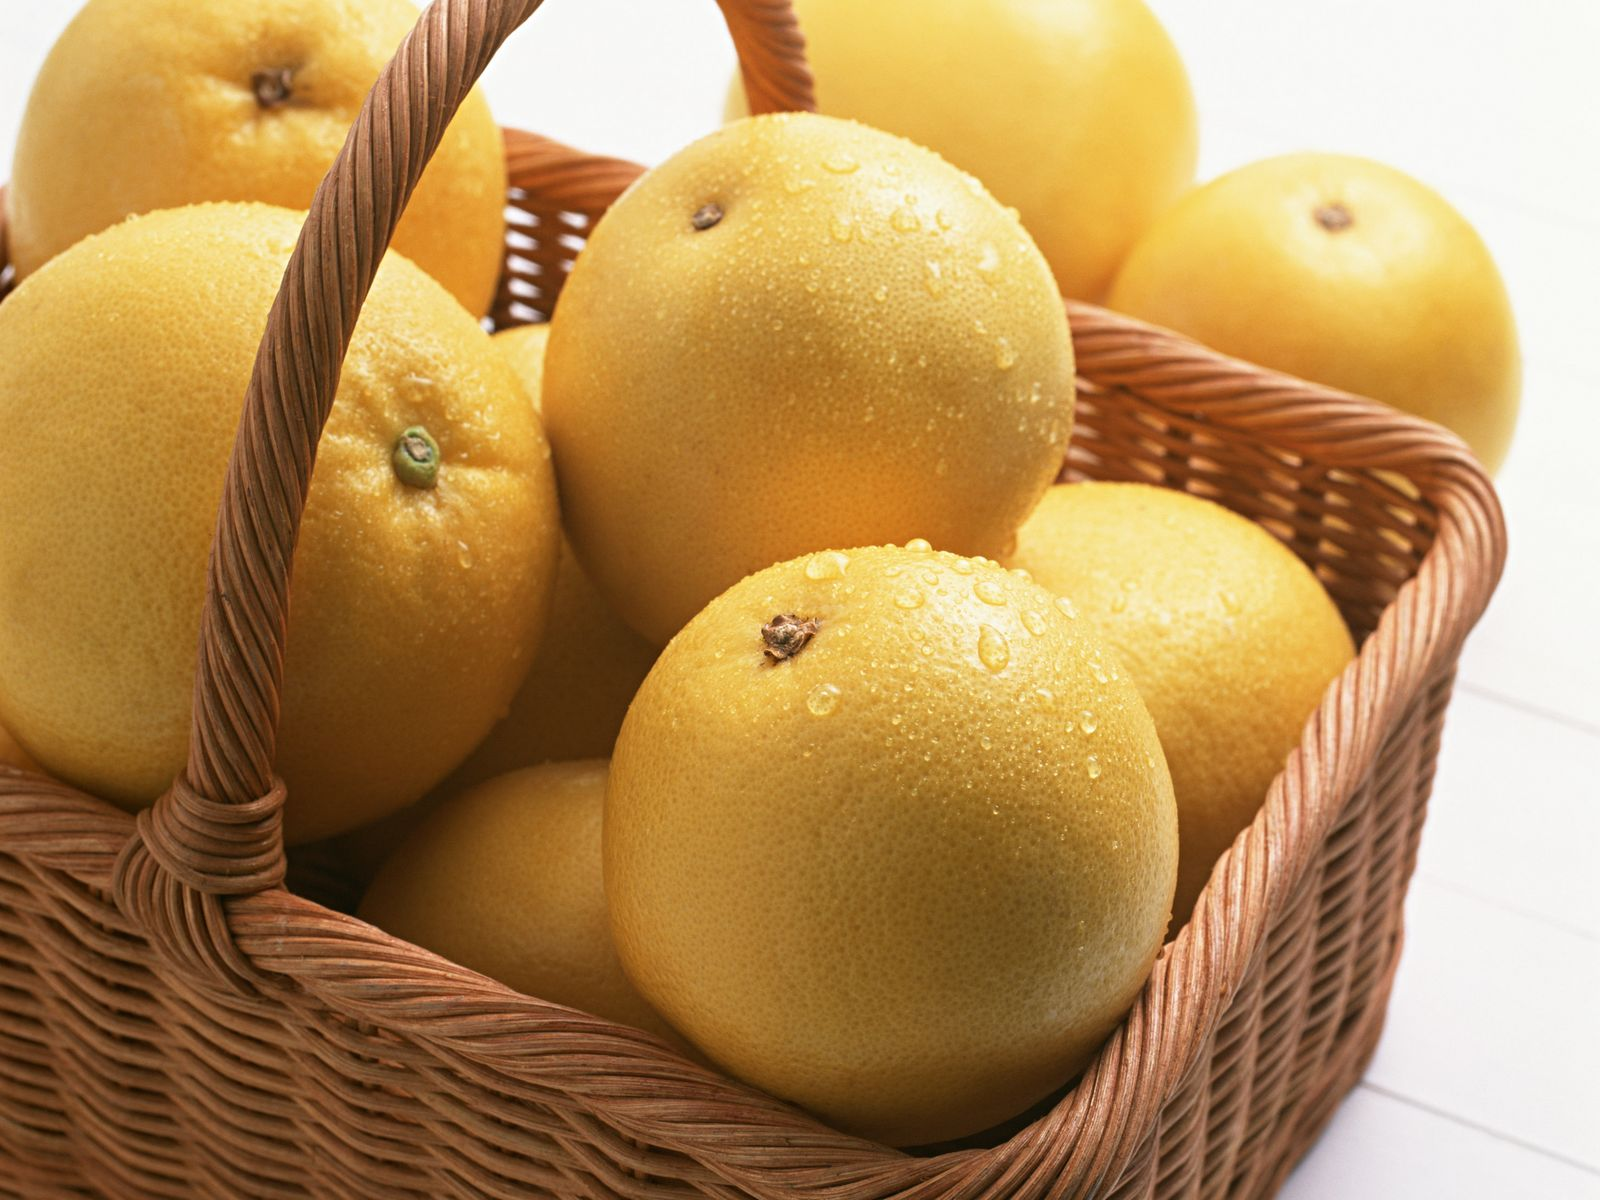 Orange Fruit High Quality Wallpapers Free Download ...